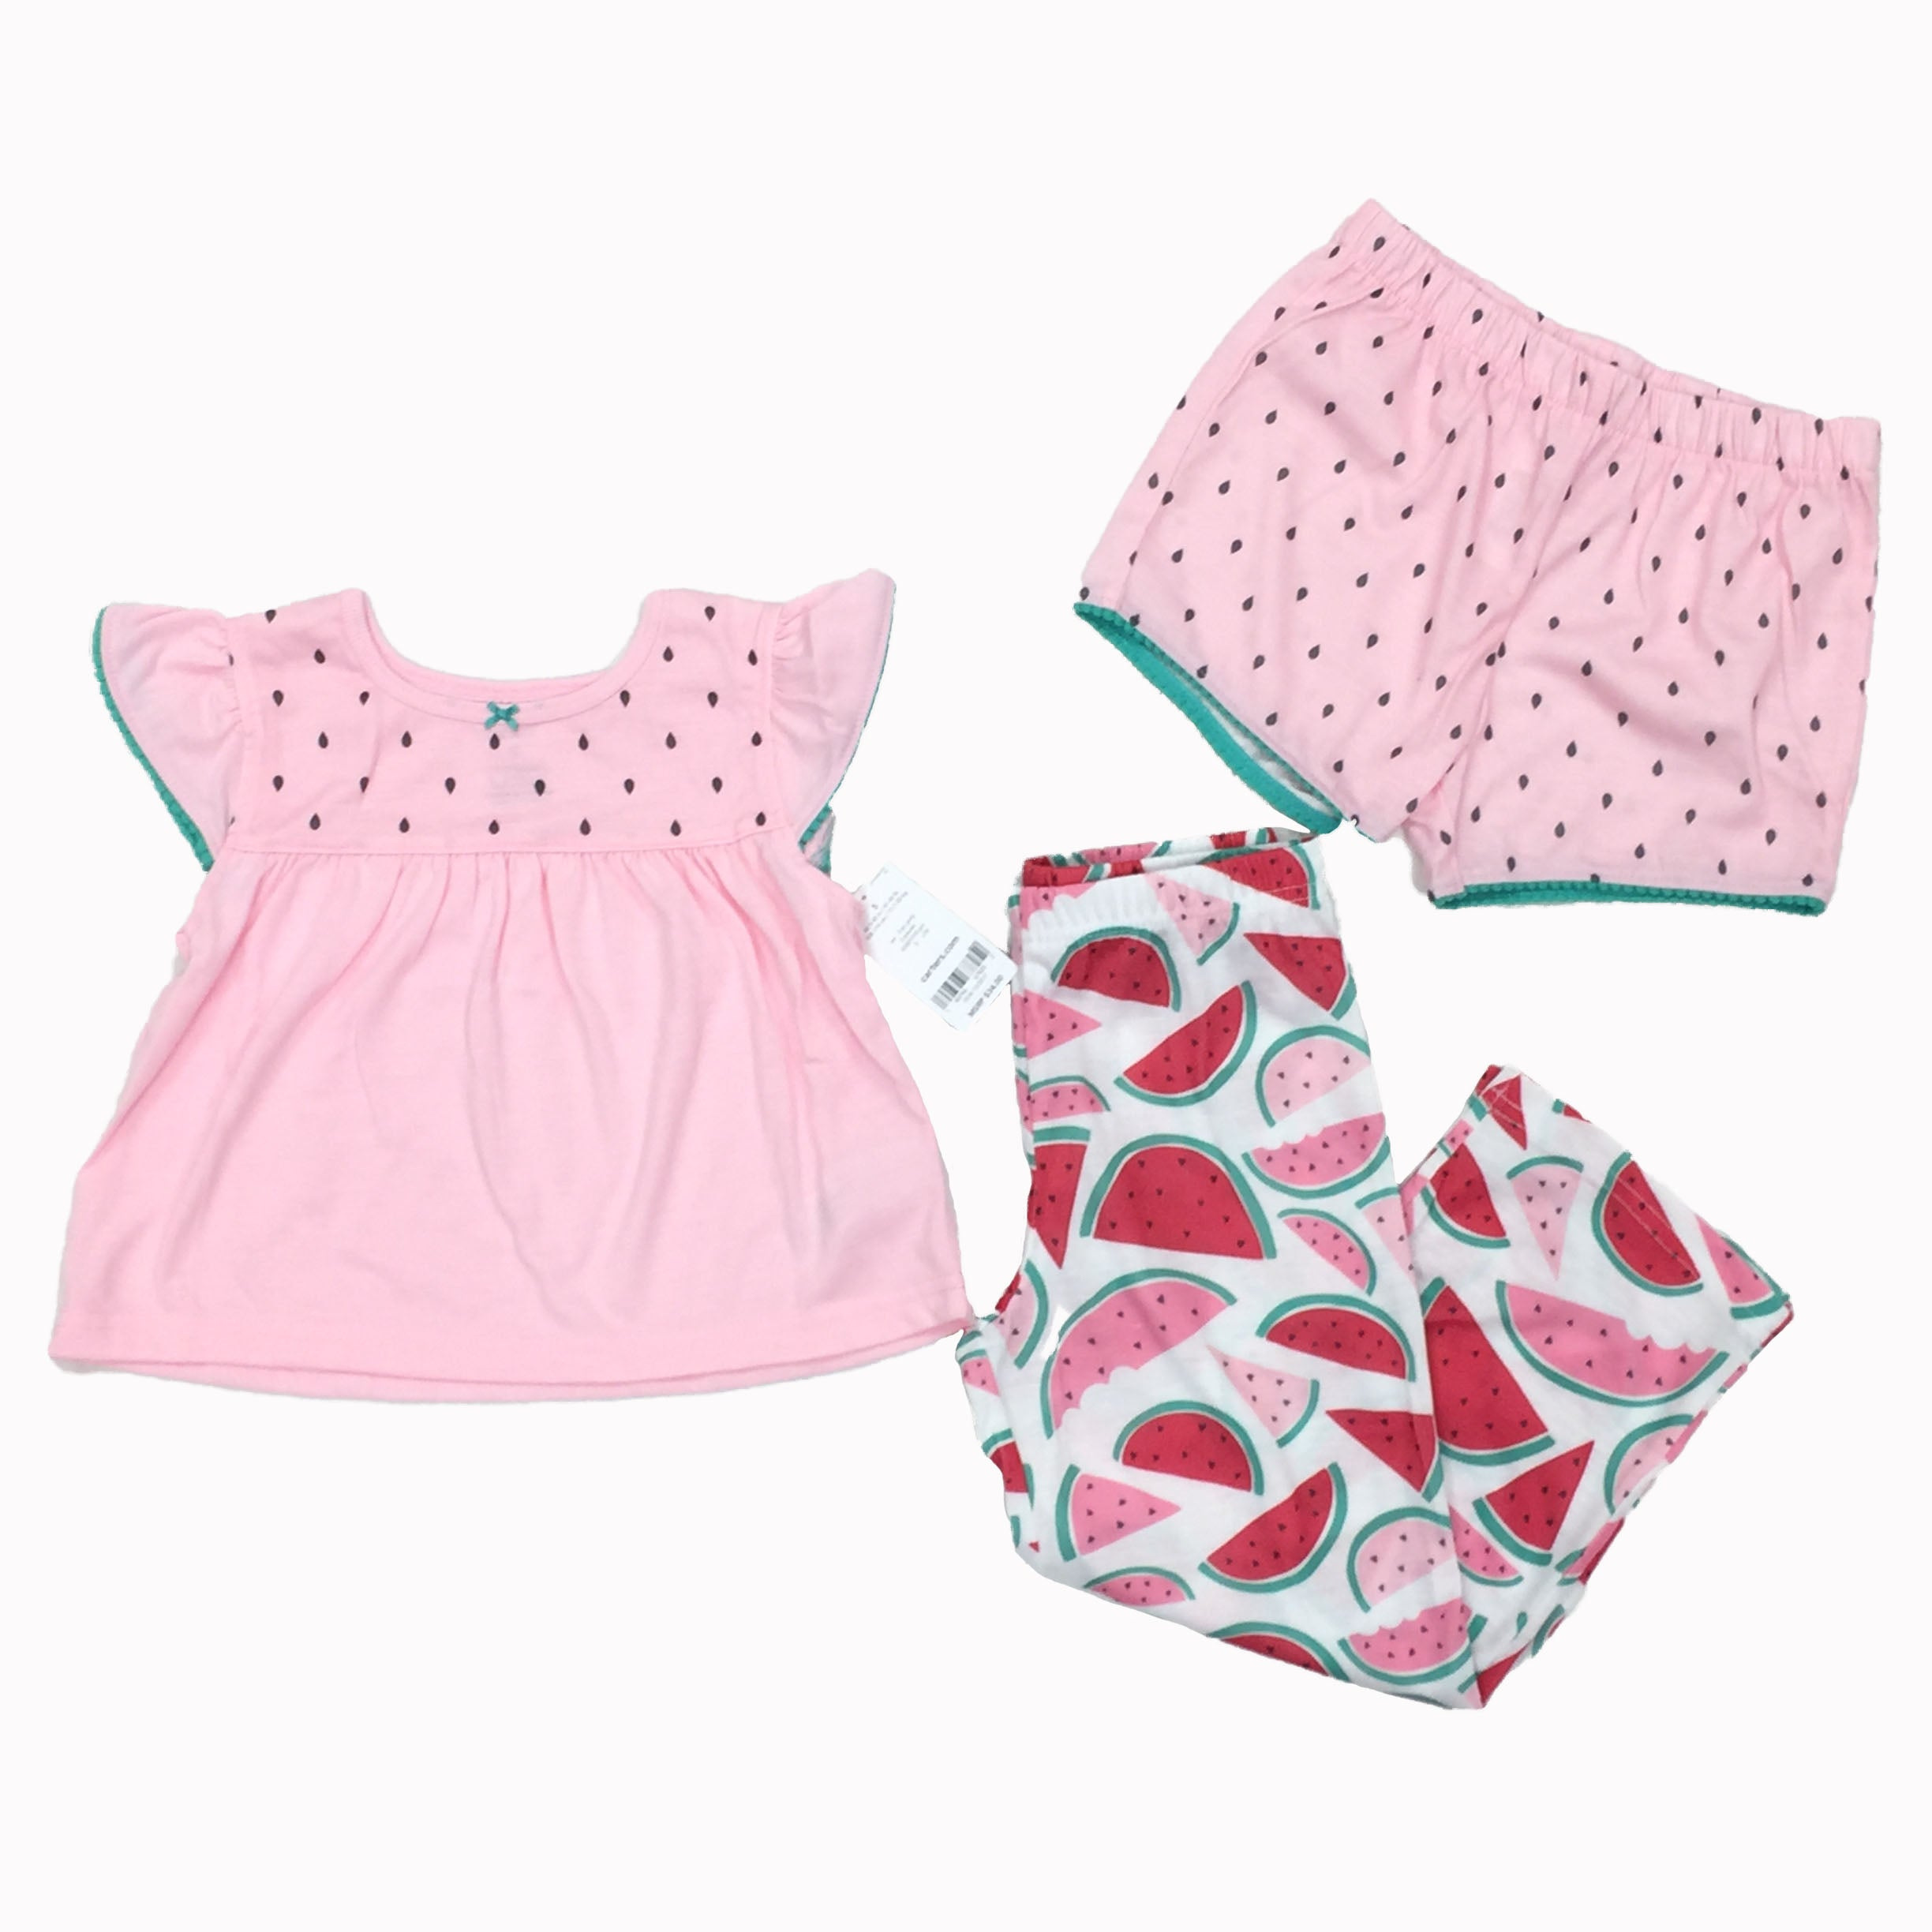 Carter_s_Girl_3_Pieces_Watermelon_Pijama.jpg?v=1543350821